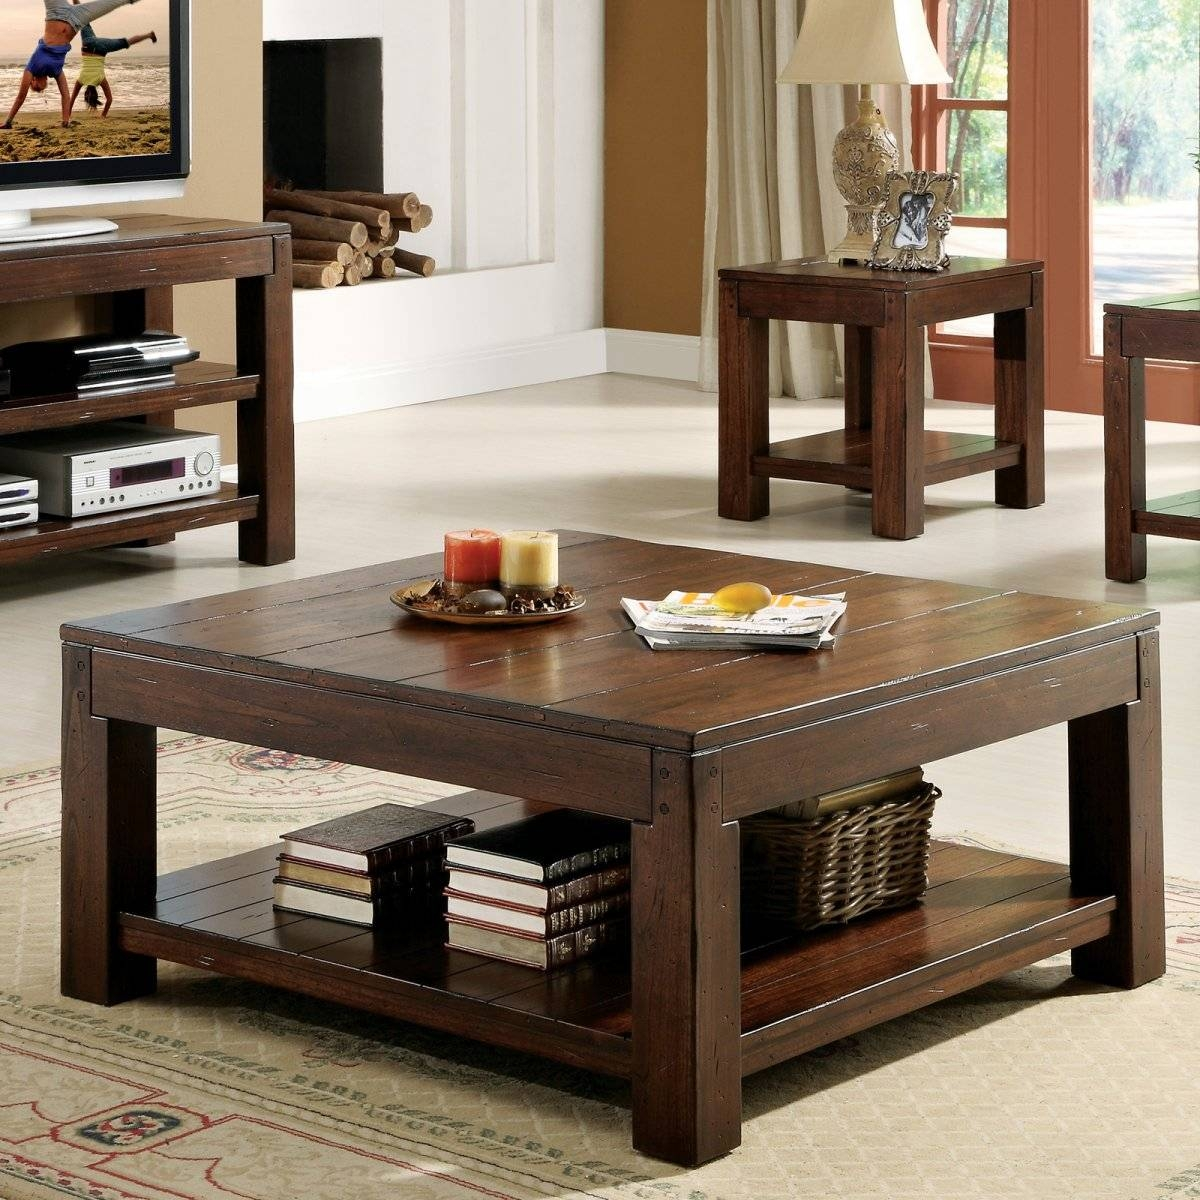 Furniture: Attractive Square Coffee Table For Modern Living Room inside Square Coffee Tables With Storage (Image 16 of 30)